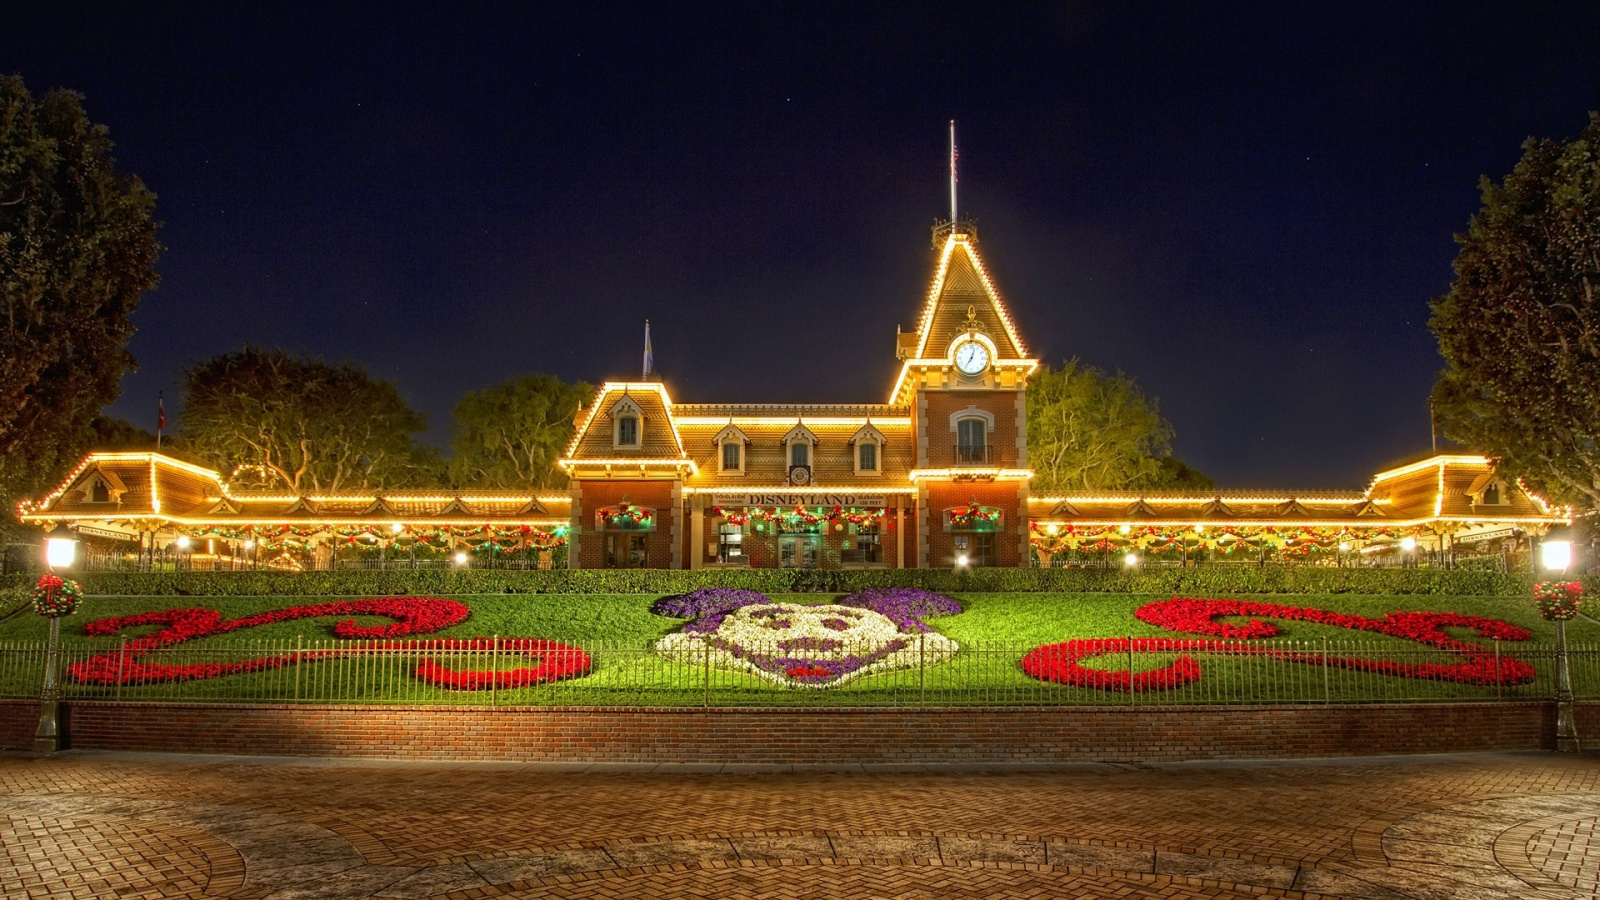 disneyland wallpaper desktop 1600x900